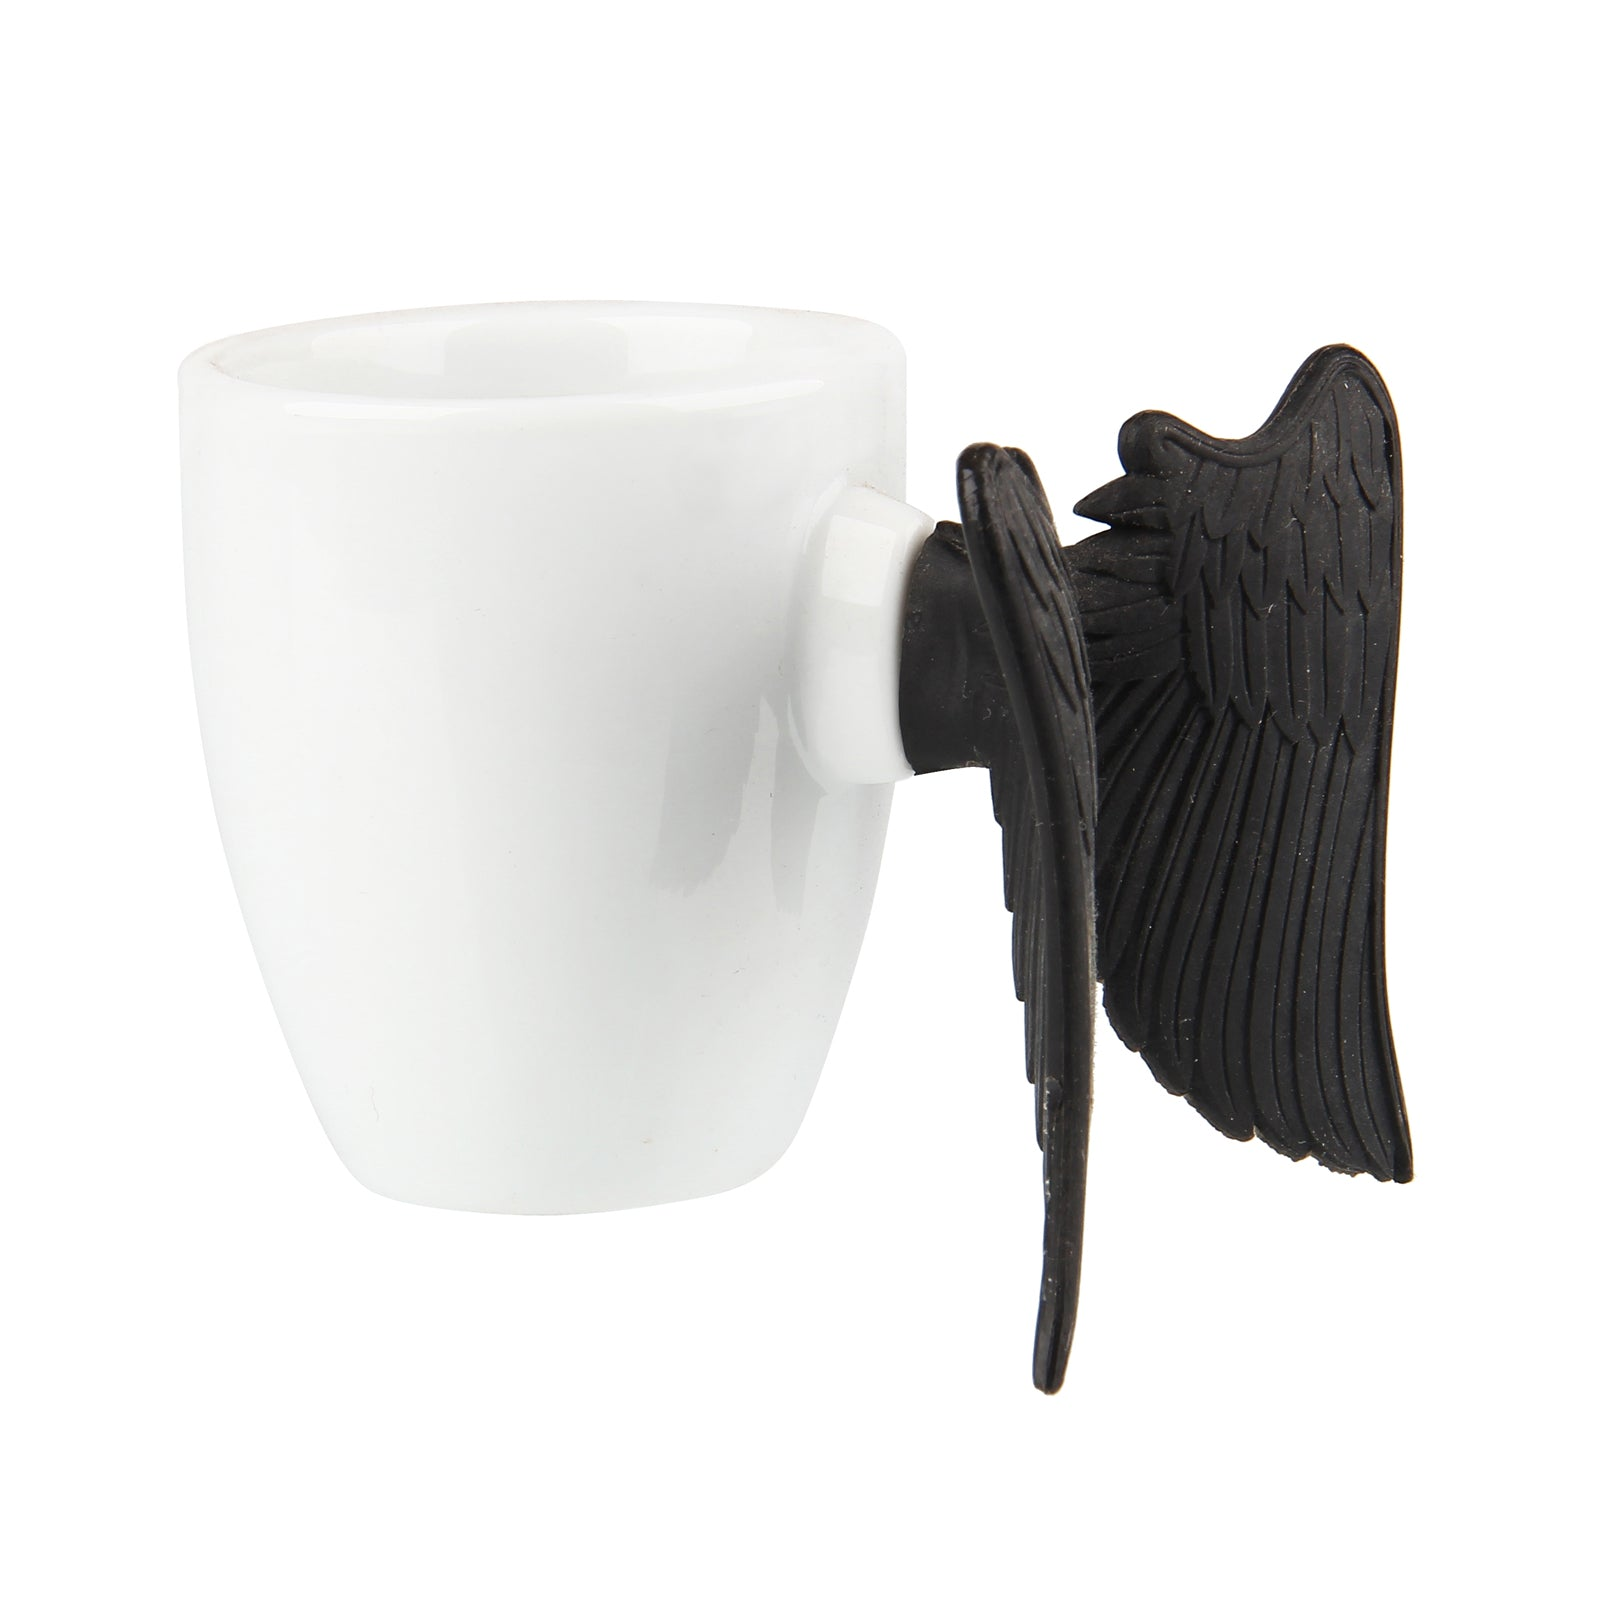 Inspirational Angel Cup - Reach For The Stars - Black Wings